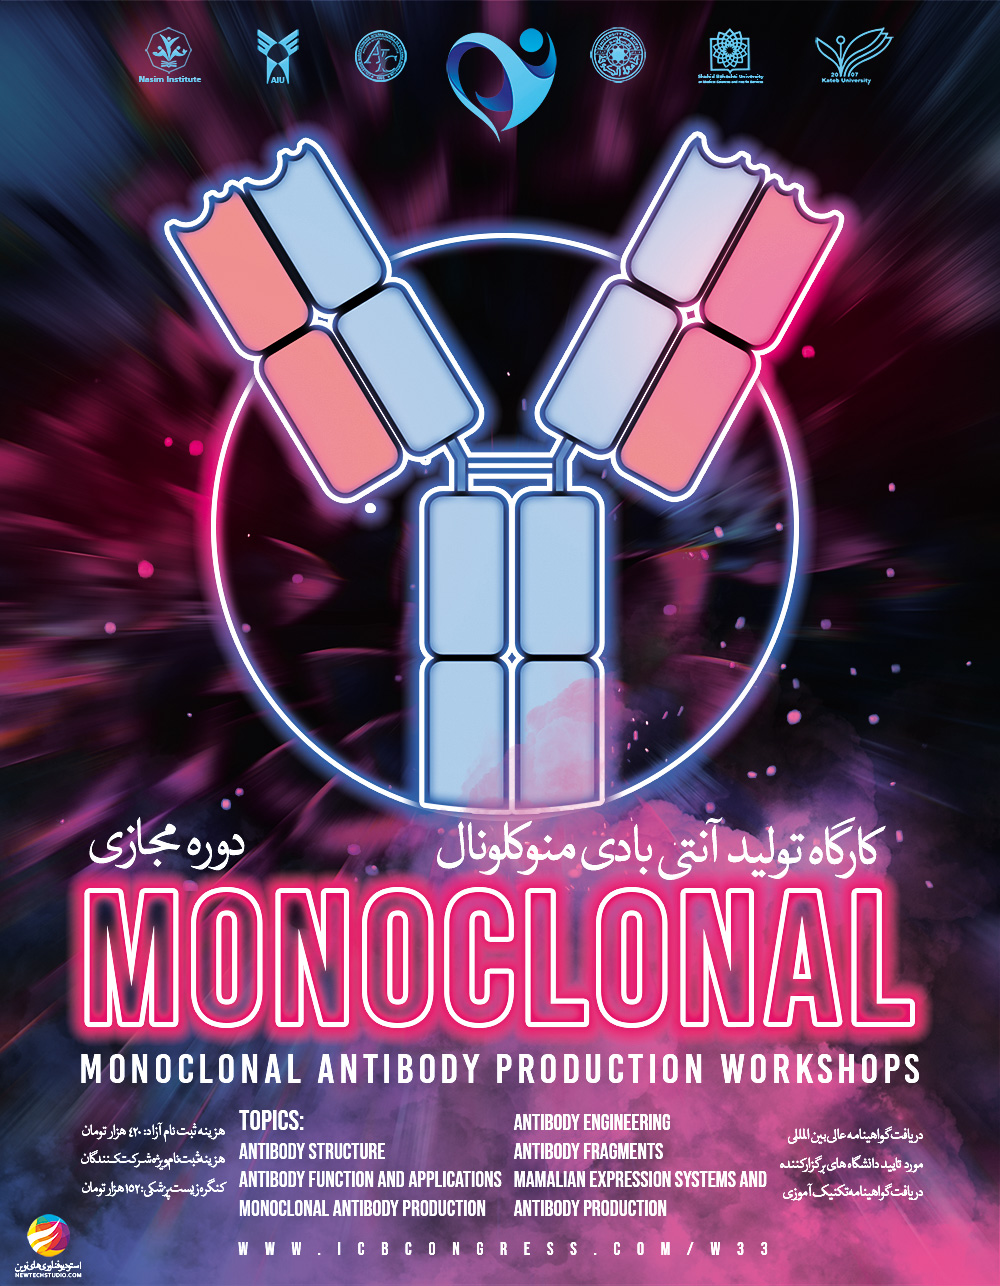 Monoclonal Antibody Production Workshops